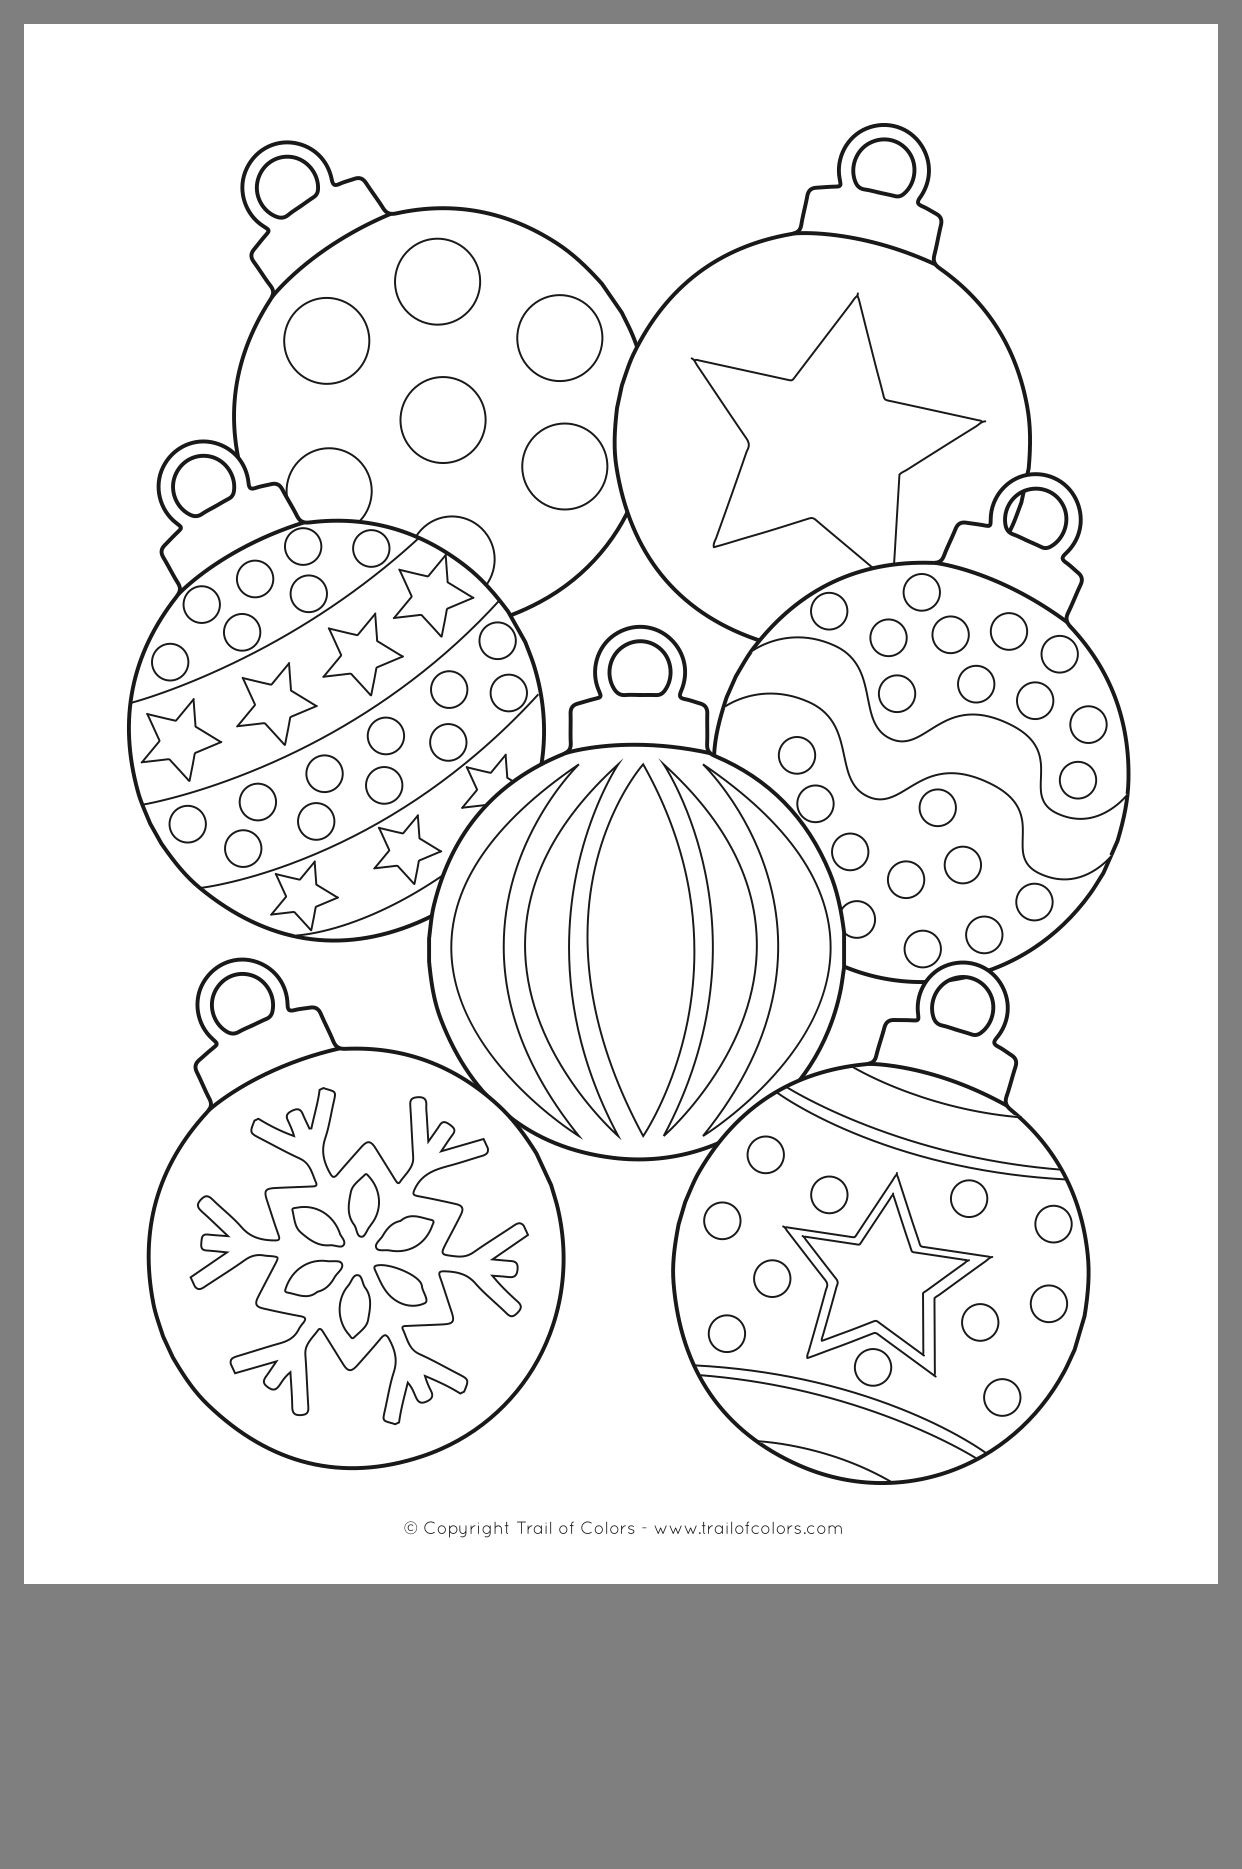 Pin By Lydia Phillips On Coloring Pages Xmas Drawing Preschool